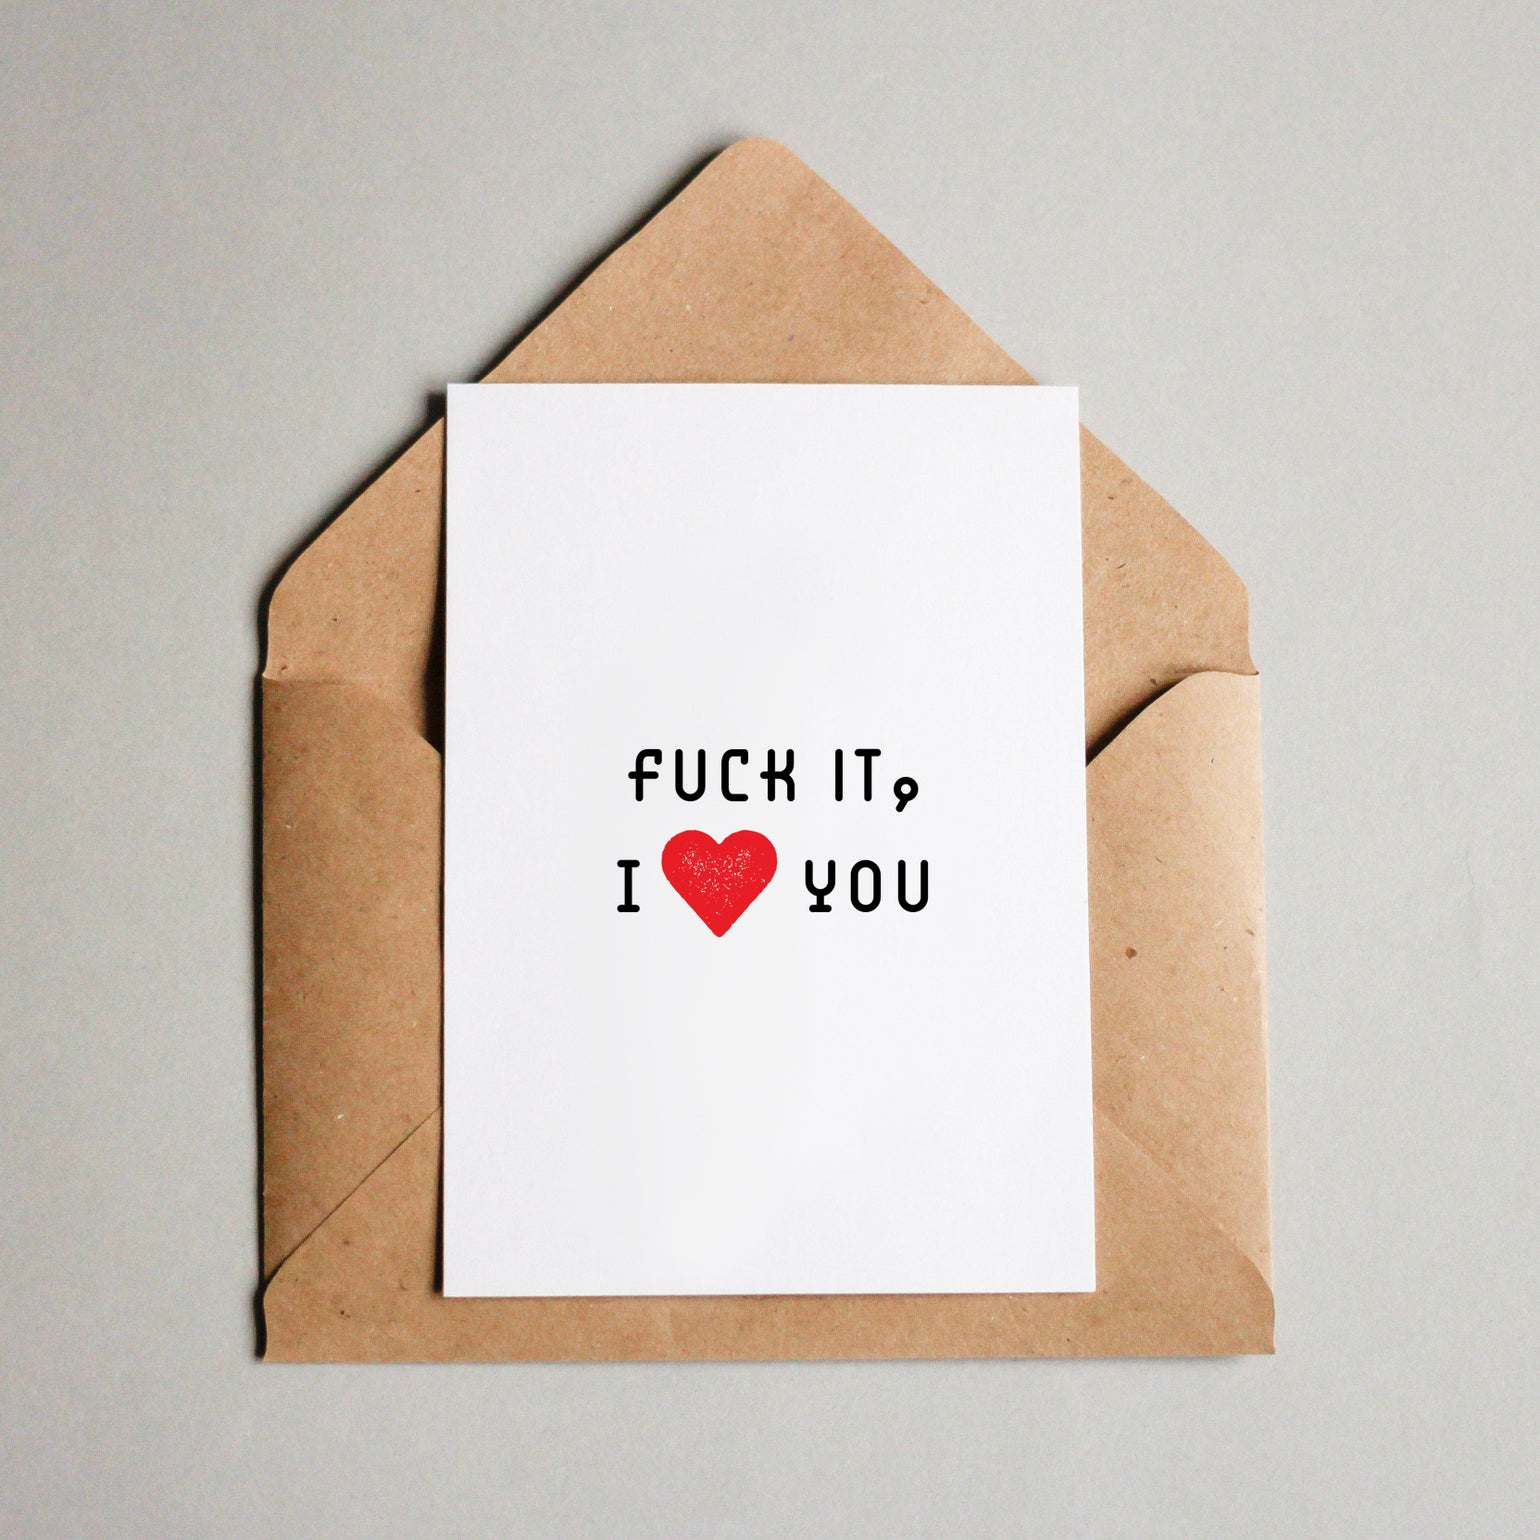 Image of Fuck it, I [heart] you